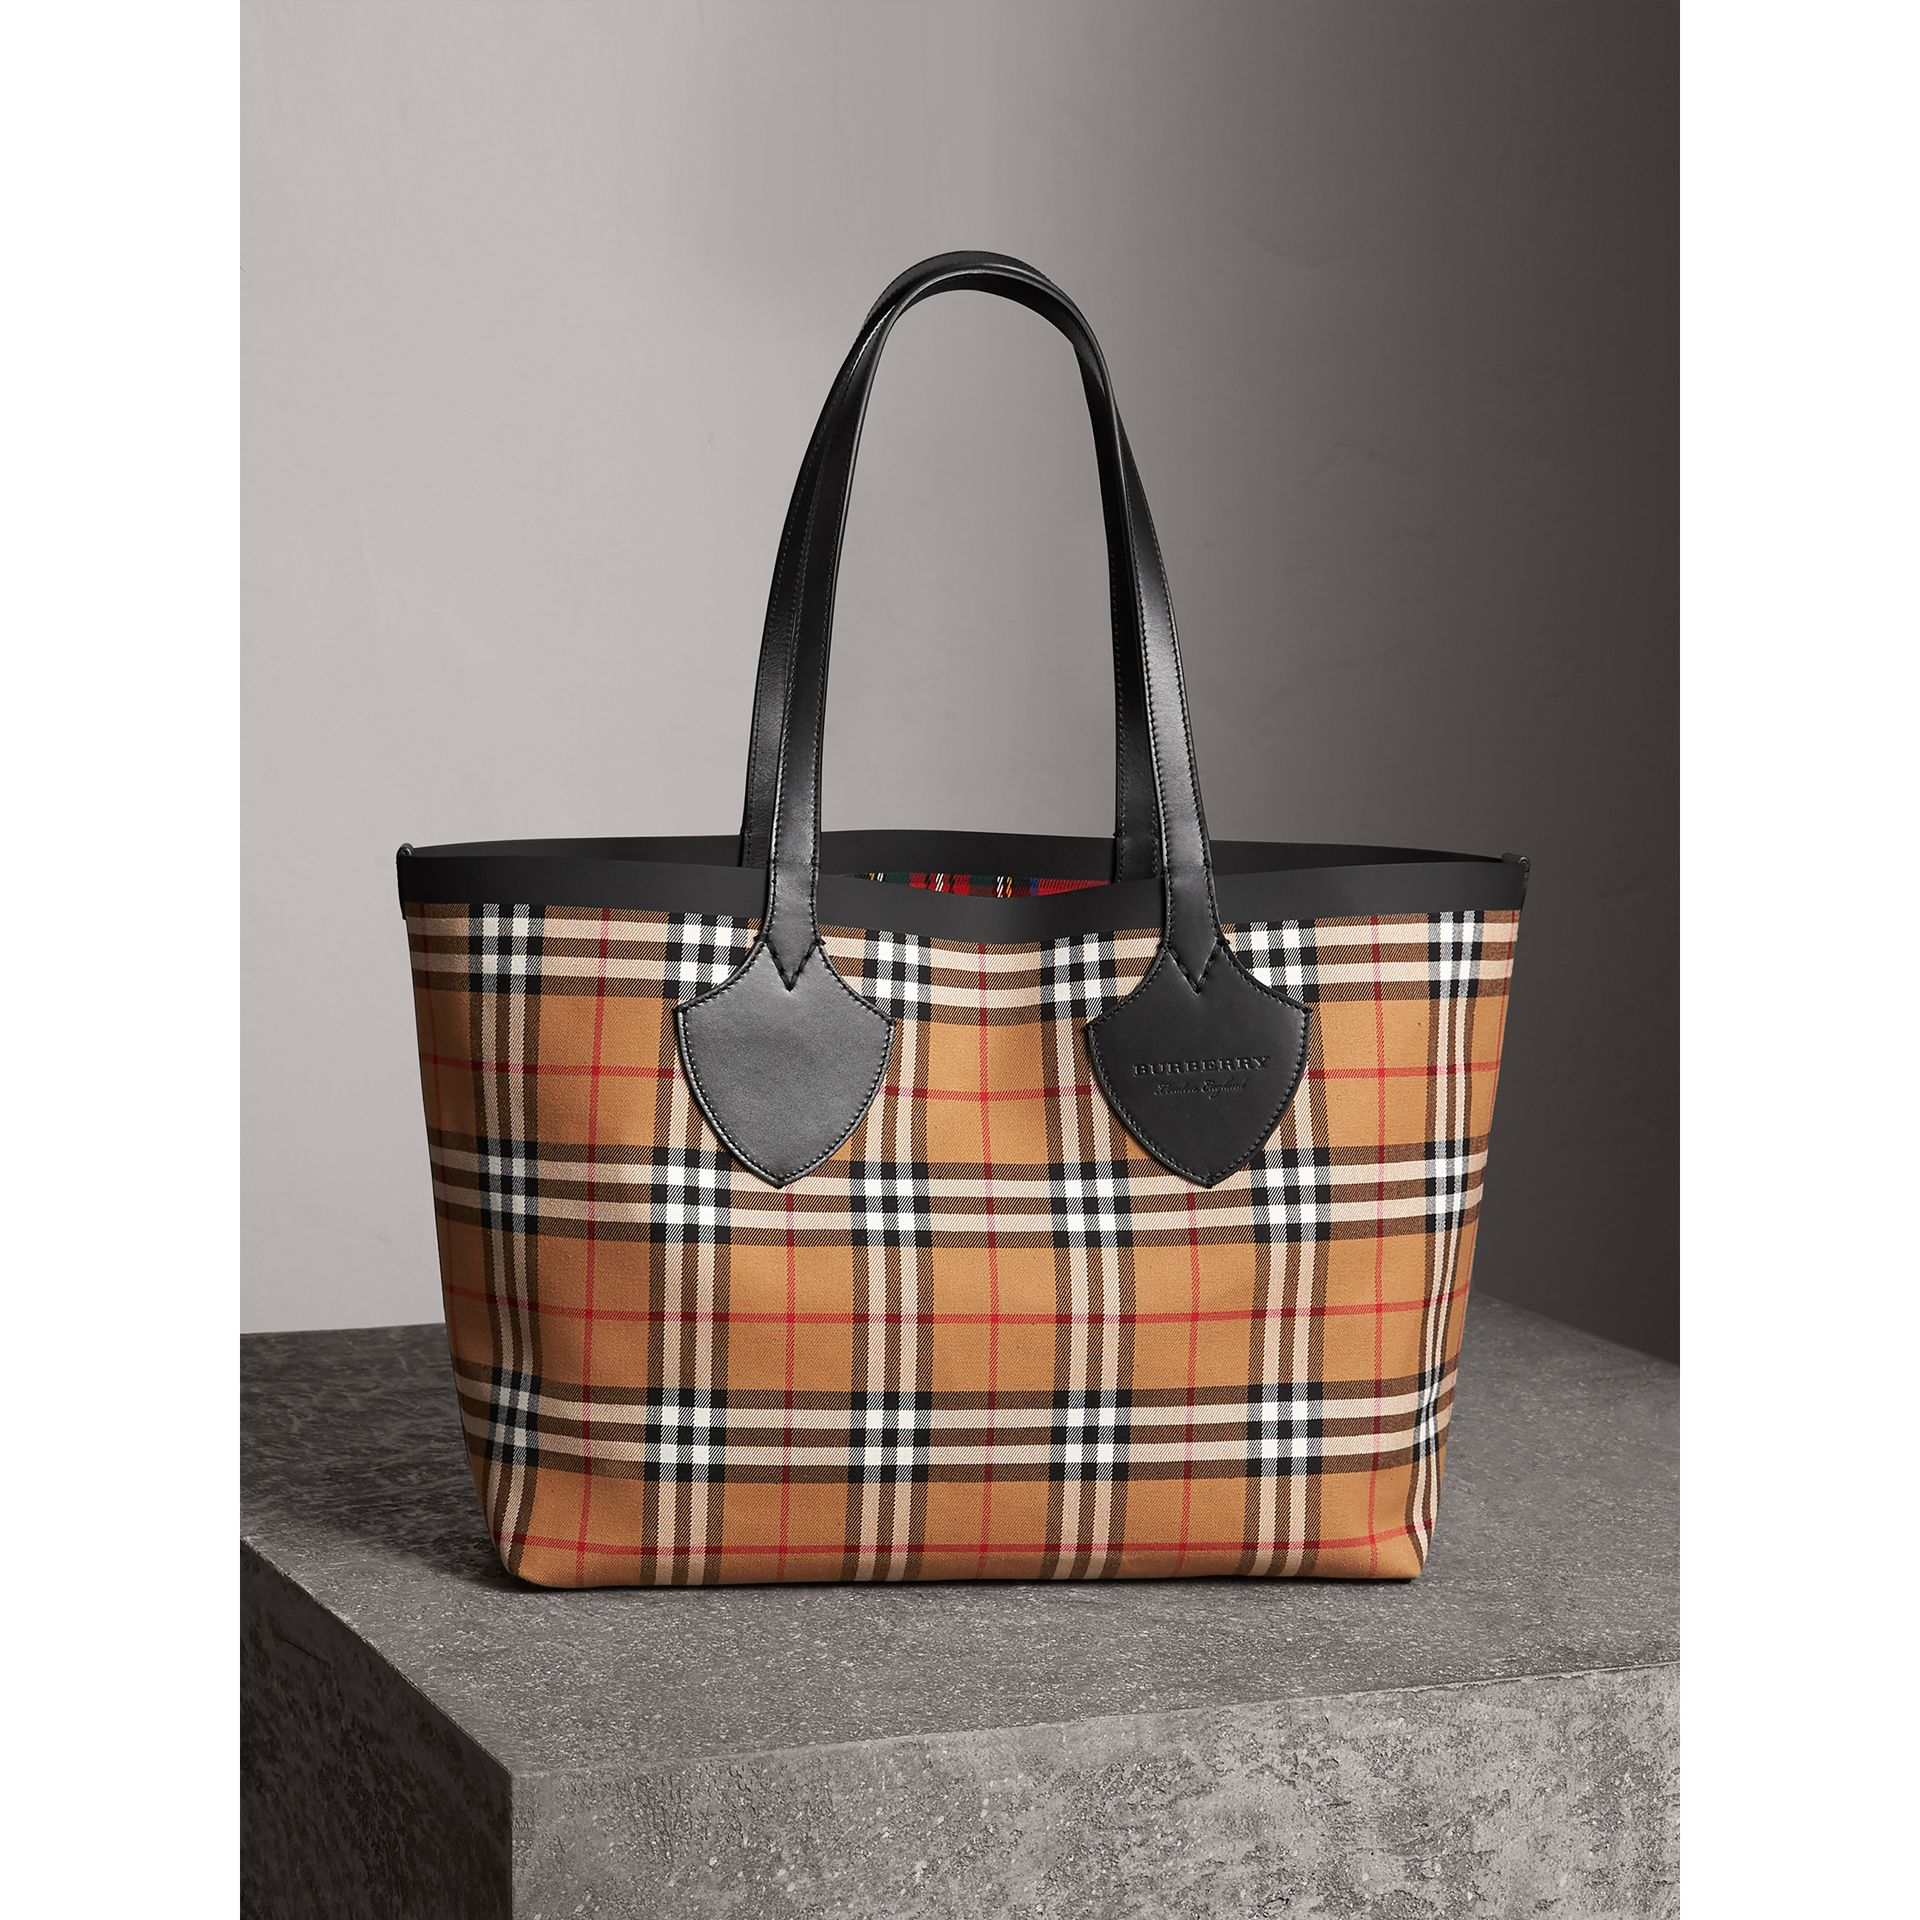 3f53da69f70d Shop Burberry The Medium Giant Reversible Tote In Vintage Check In ...